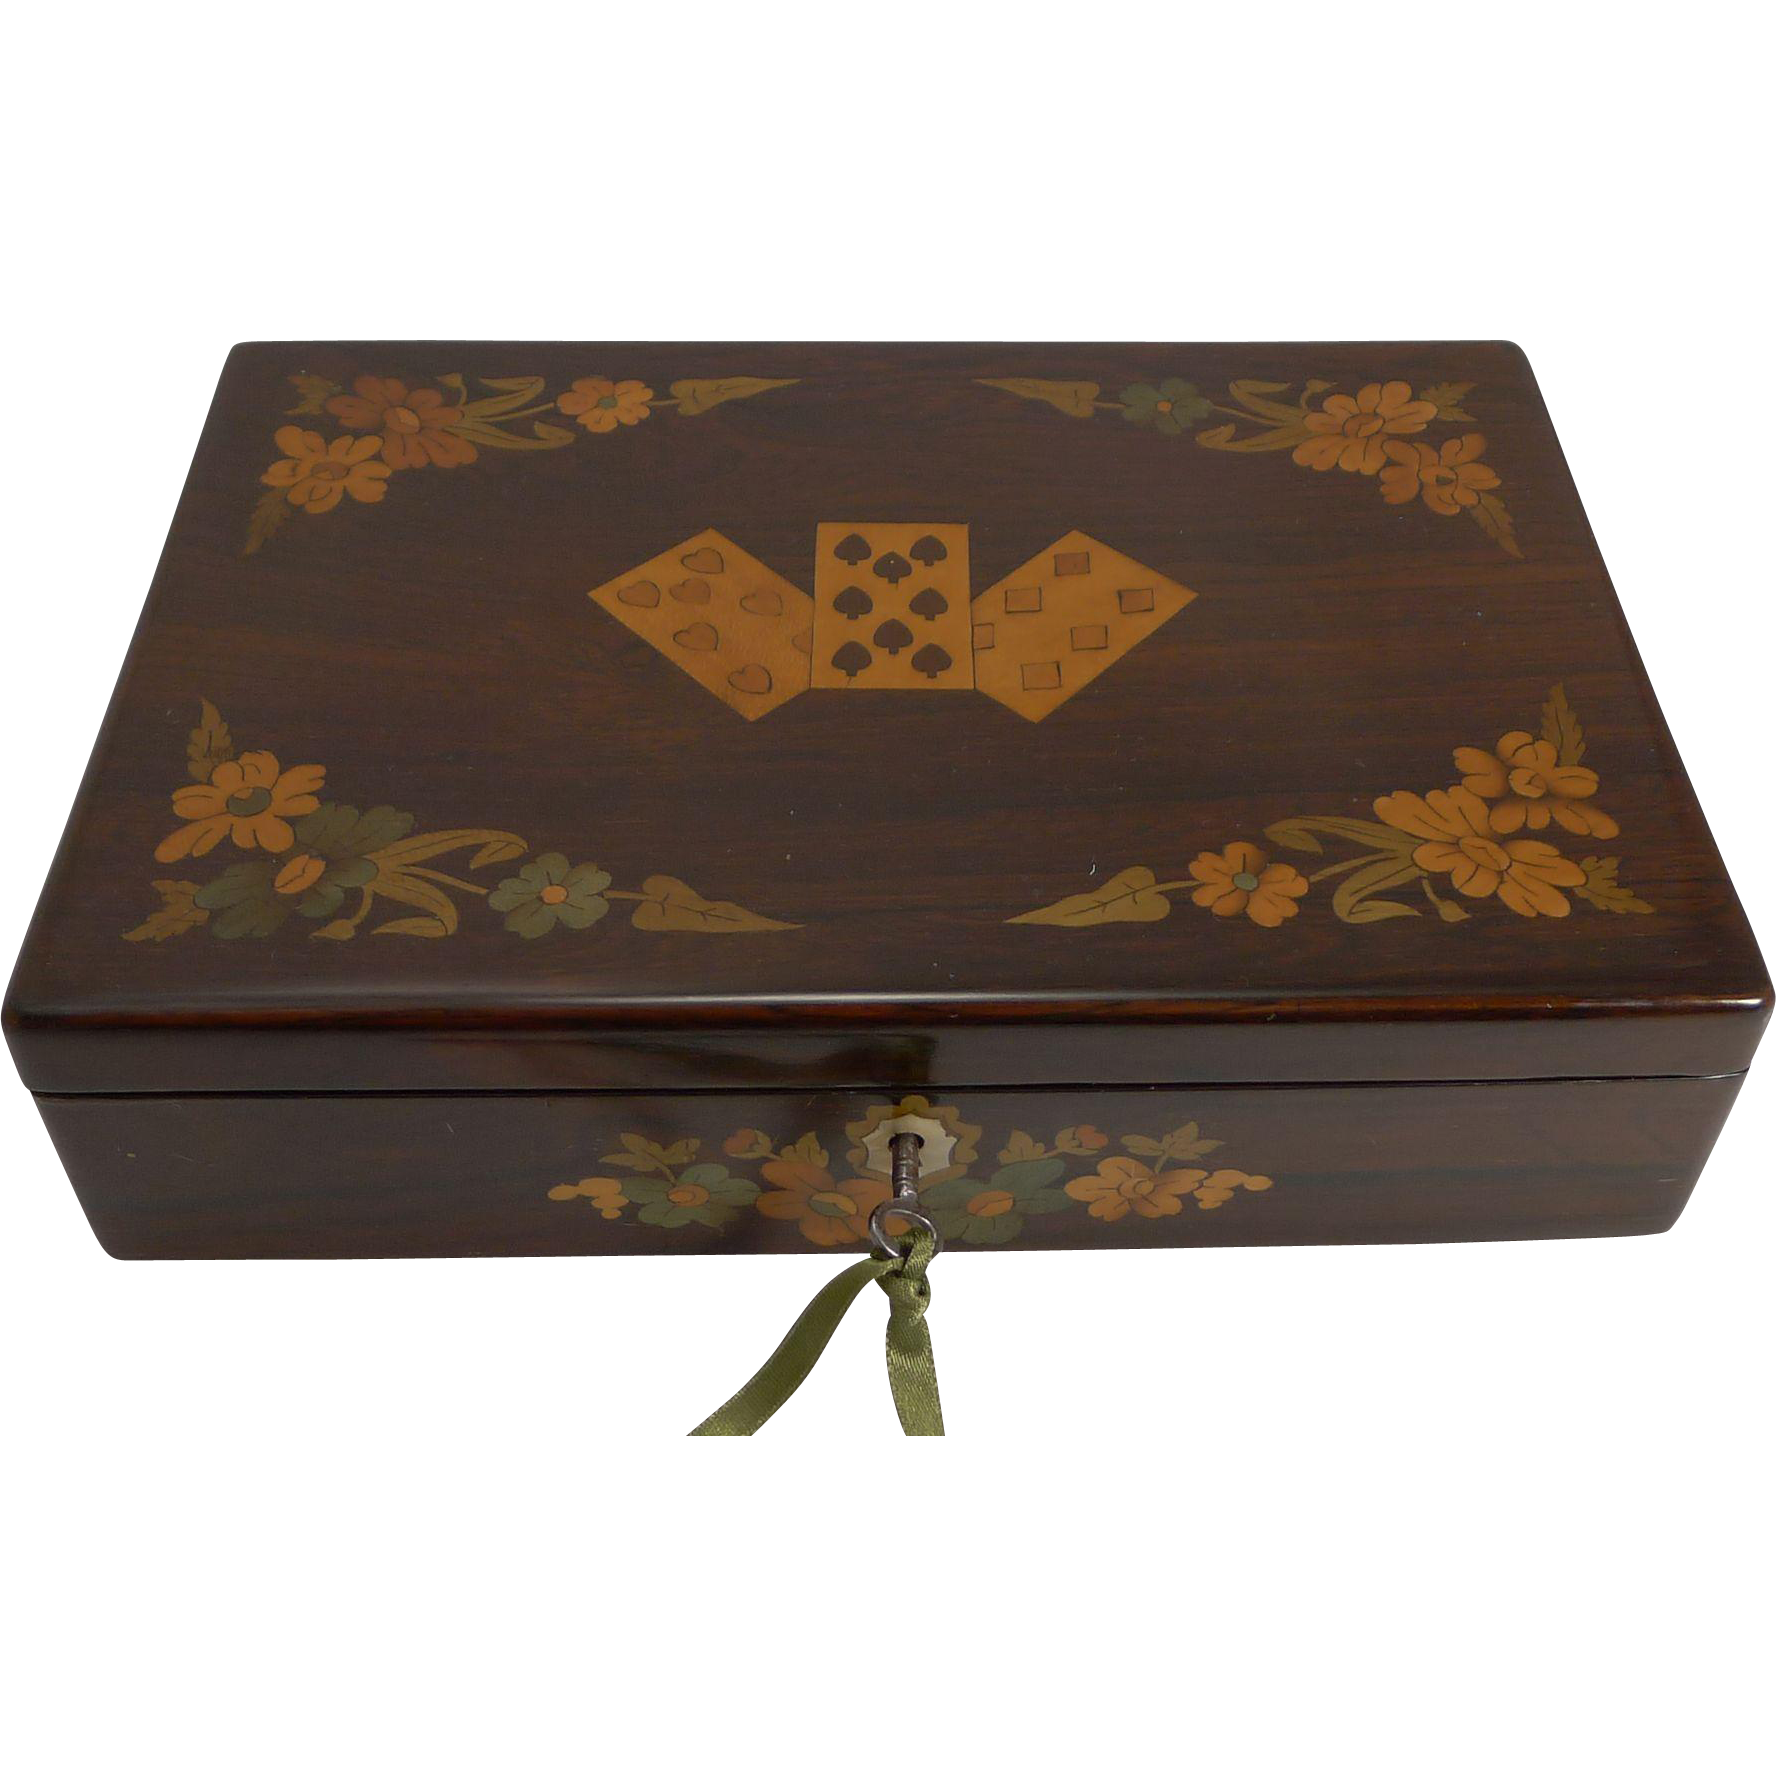 Exquisite Antique English Marquetry Inlaid Playing Card Box c.1840